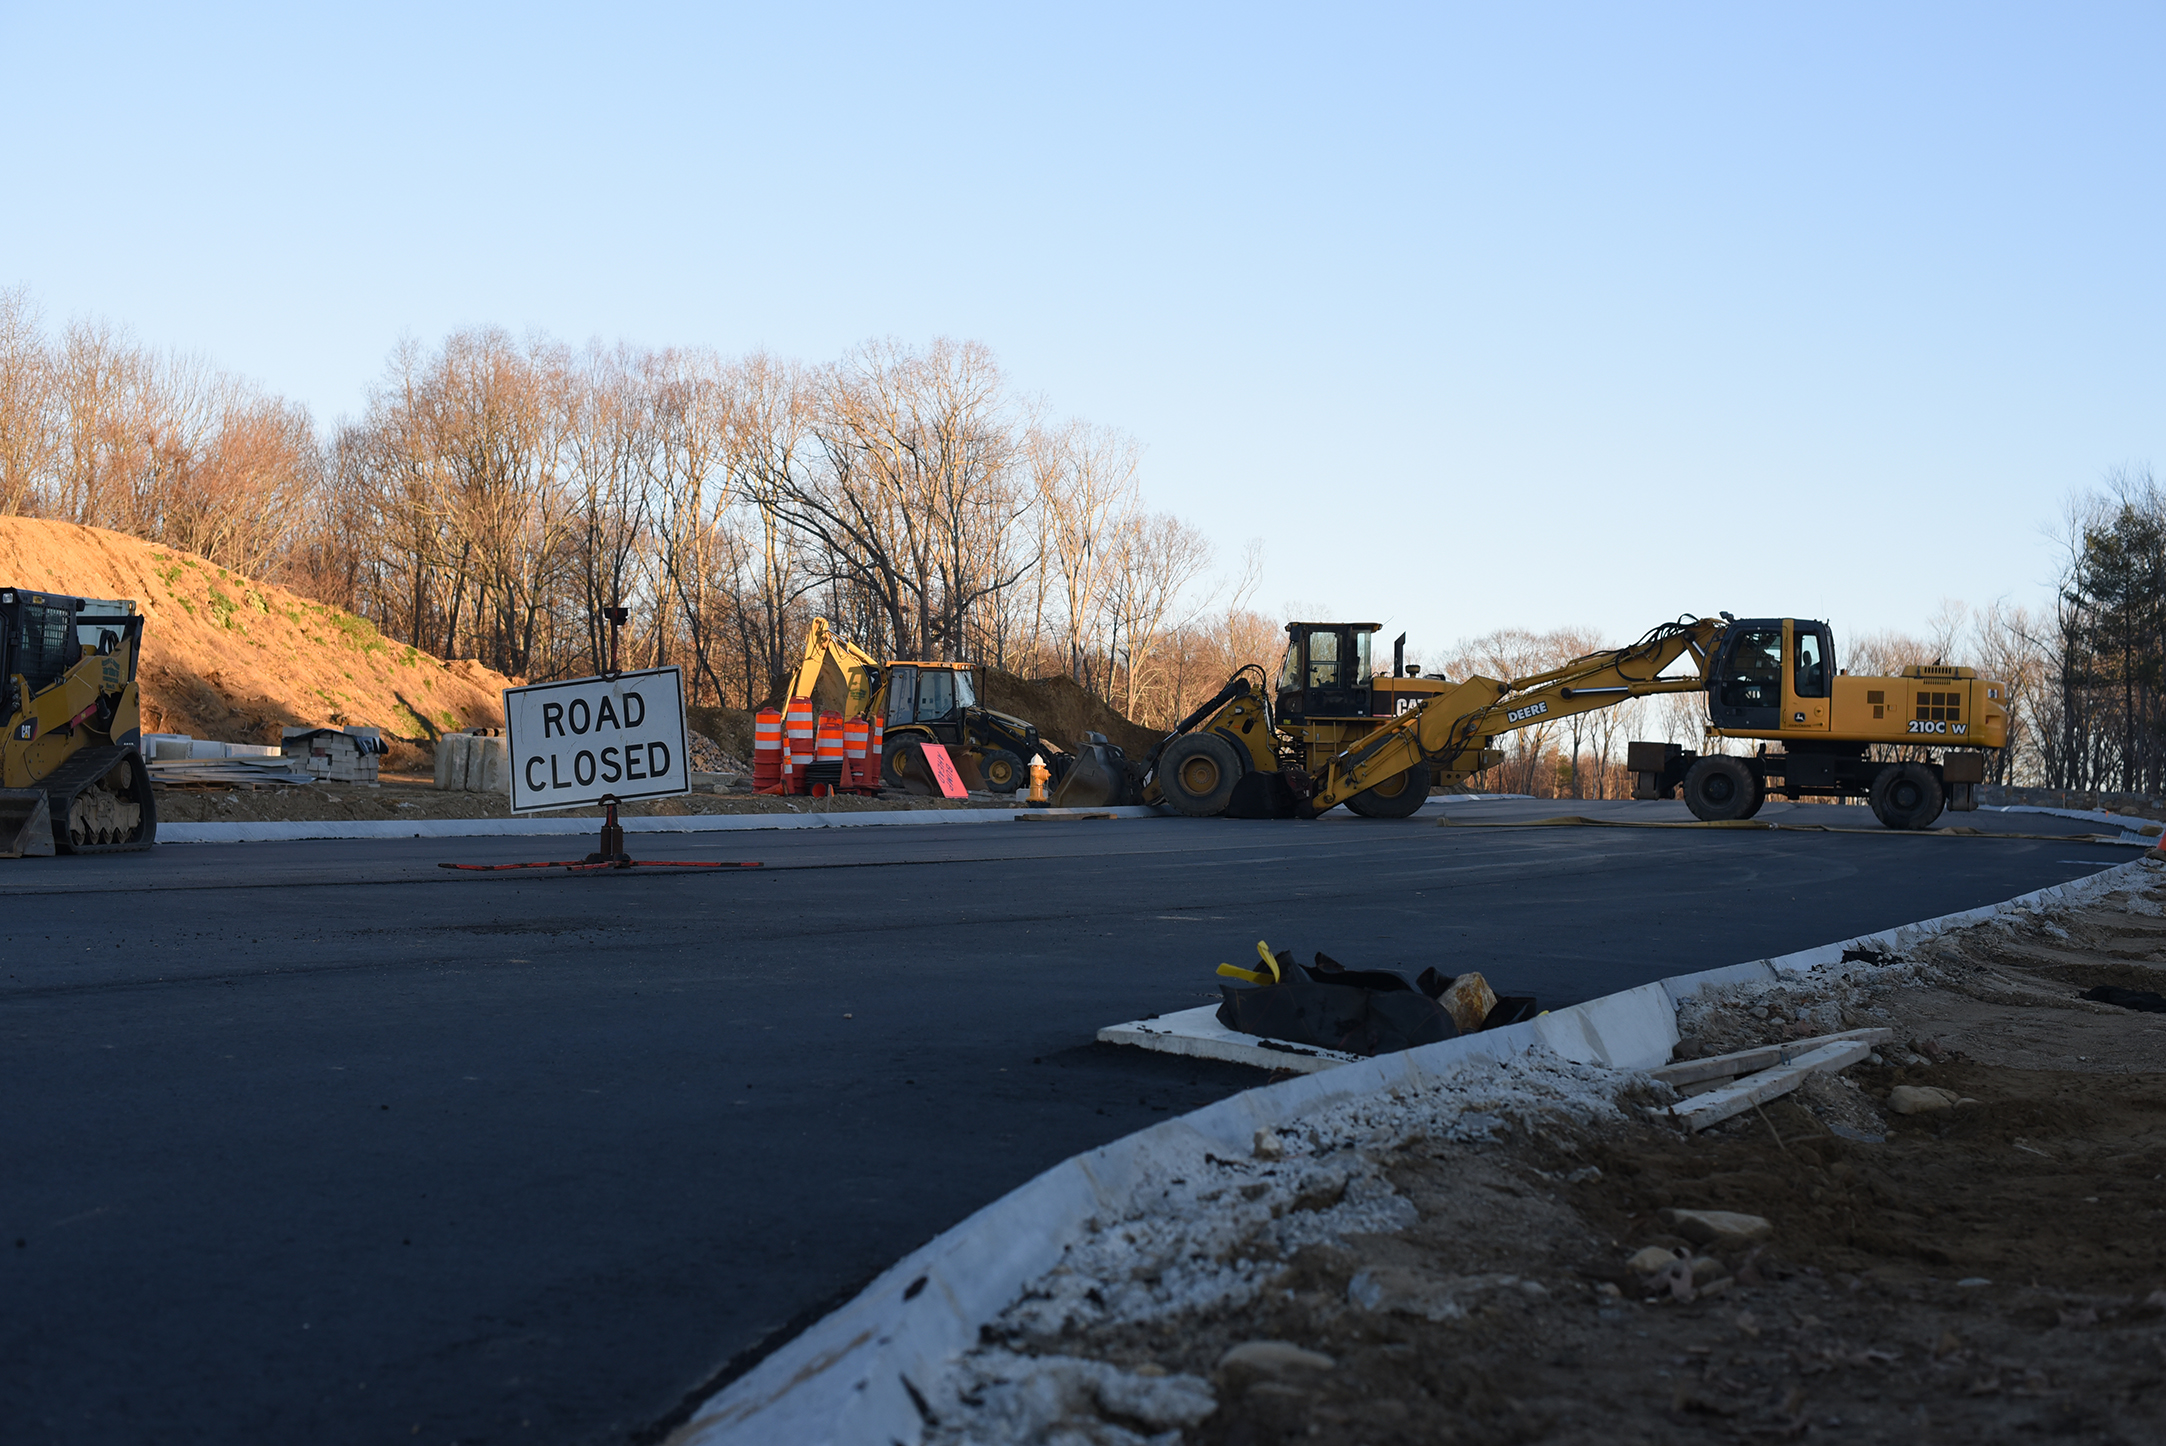 Construction vehicles are seen at the site of the North Hillside Road extension in Storrs, Connecticut on Nov. 29, 2015. The project, which will connect North Hillside Road with Route 44,is scheduled to be completed on Dec. 18.(Allen Lang/The Daily Campus)